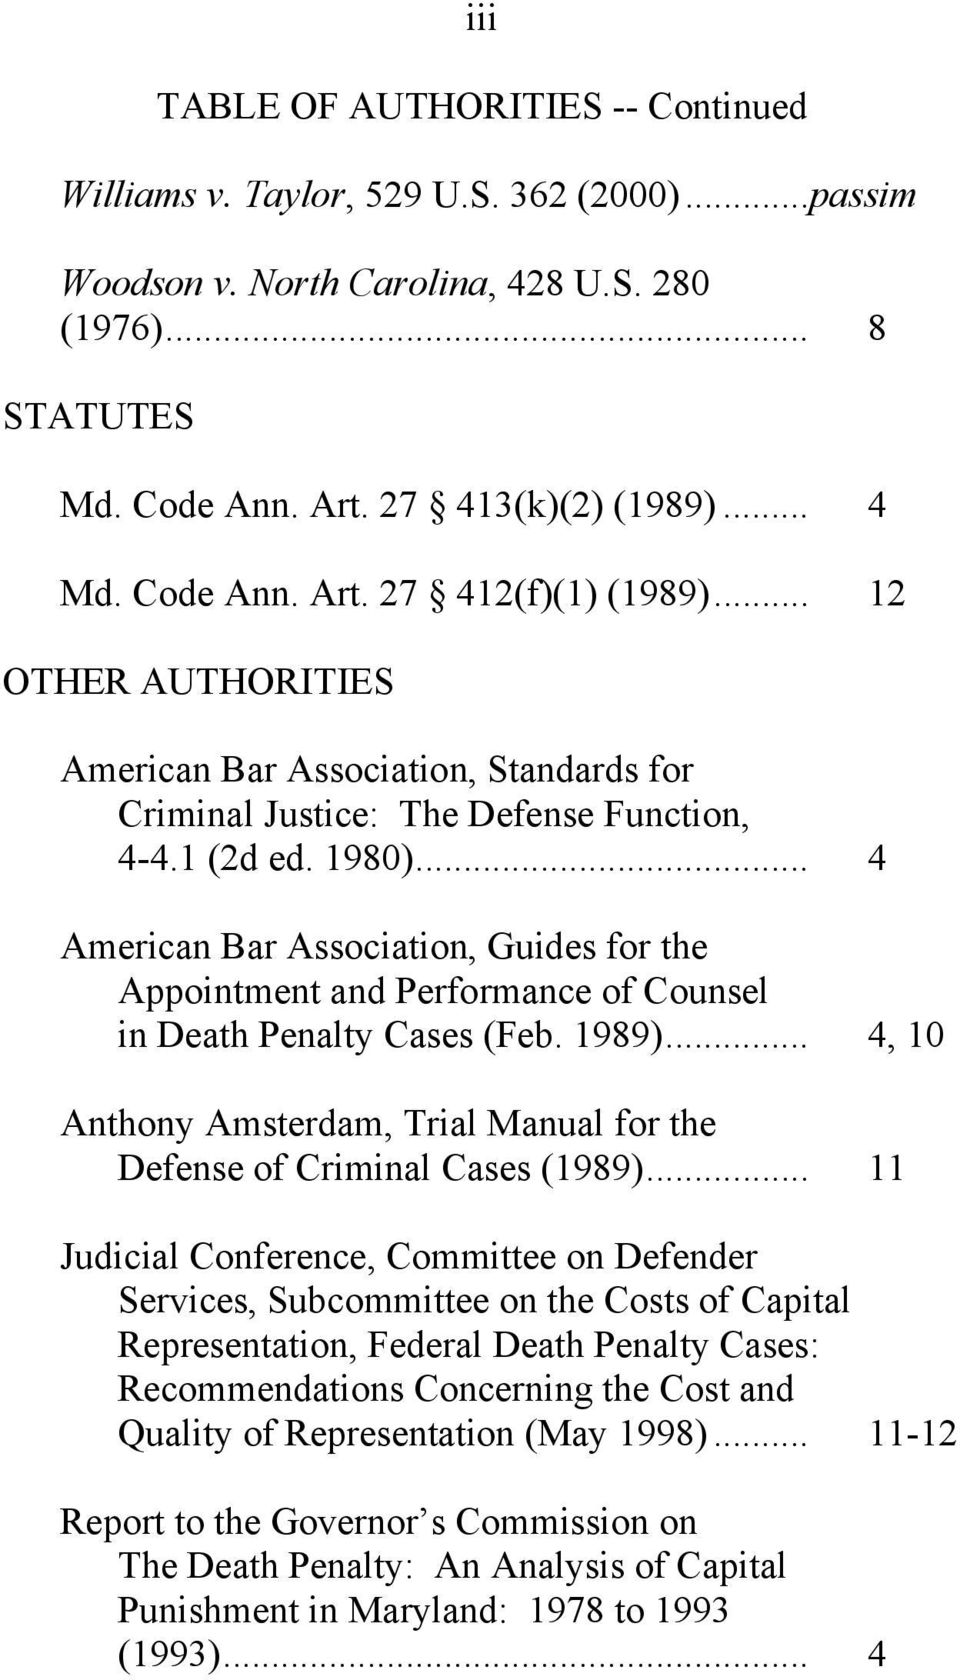 .. 4 American Bar Association, Guides for the Appointment and Performance of Counsel in Death Penalty Cases (Feb. 1989)... 4, 10 Anthony Amsterdam, Trial Manual for the Defense of Criminal Cases (1989).